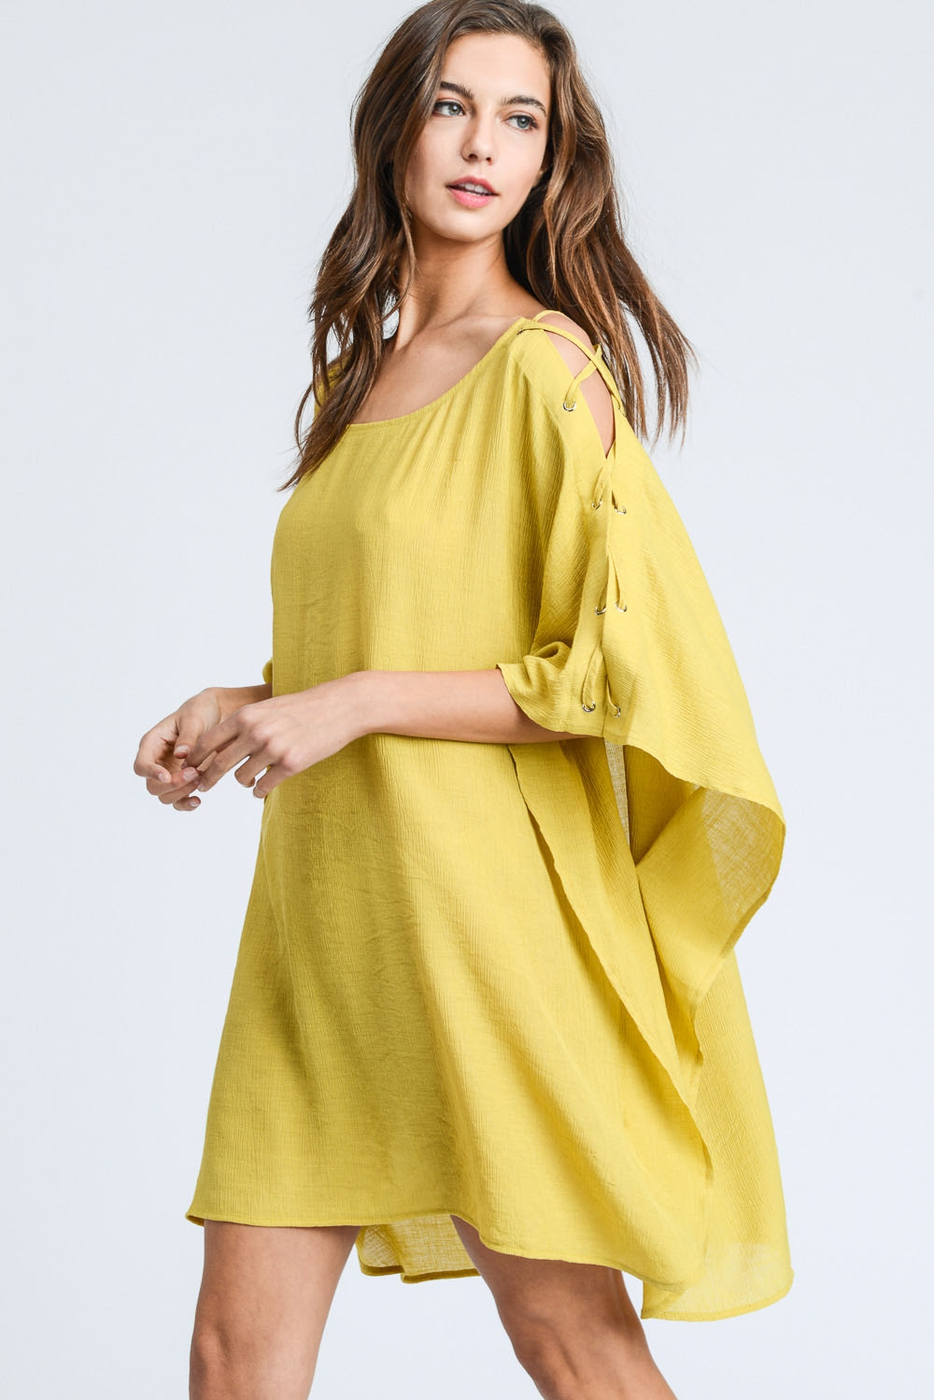 LACE UP SHOULDER COVER UP TUNIC  - orangeshine.com